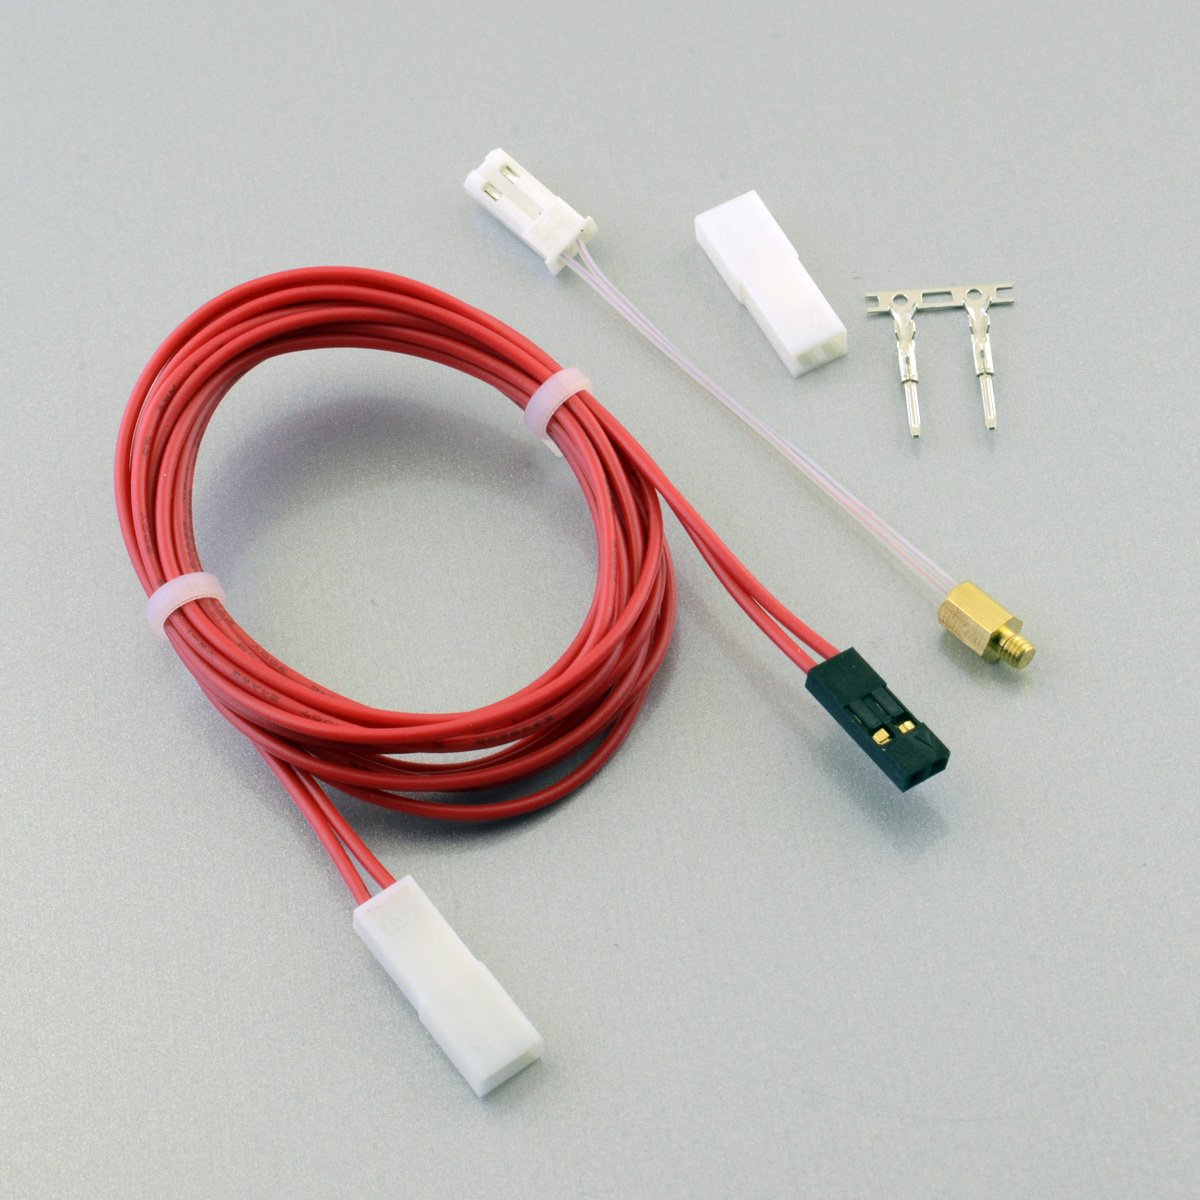 715CbGbnSVL._SL1200_ amazon com m3 stud thermistor cable for reprap 3d printer  at eliteediting.co